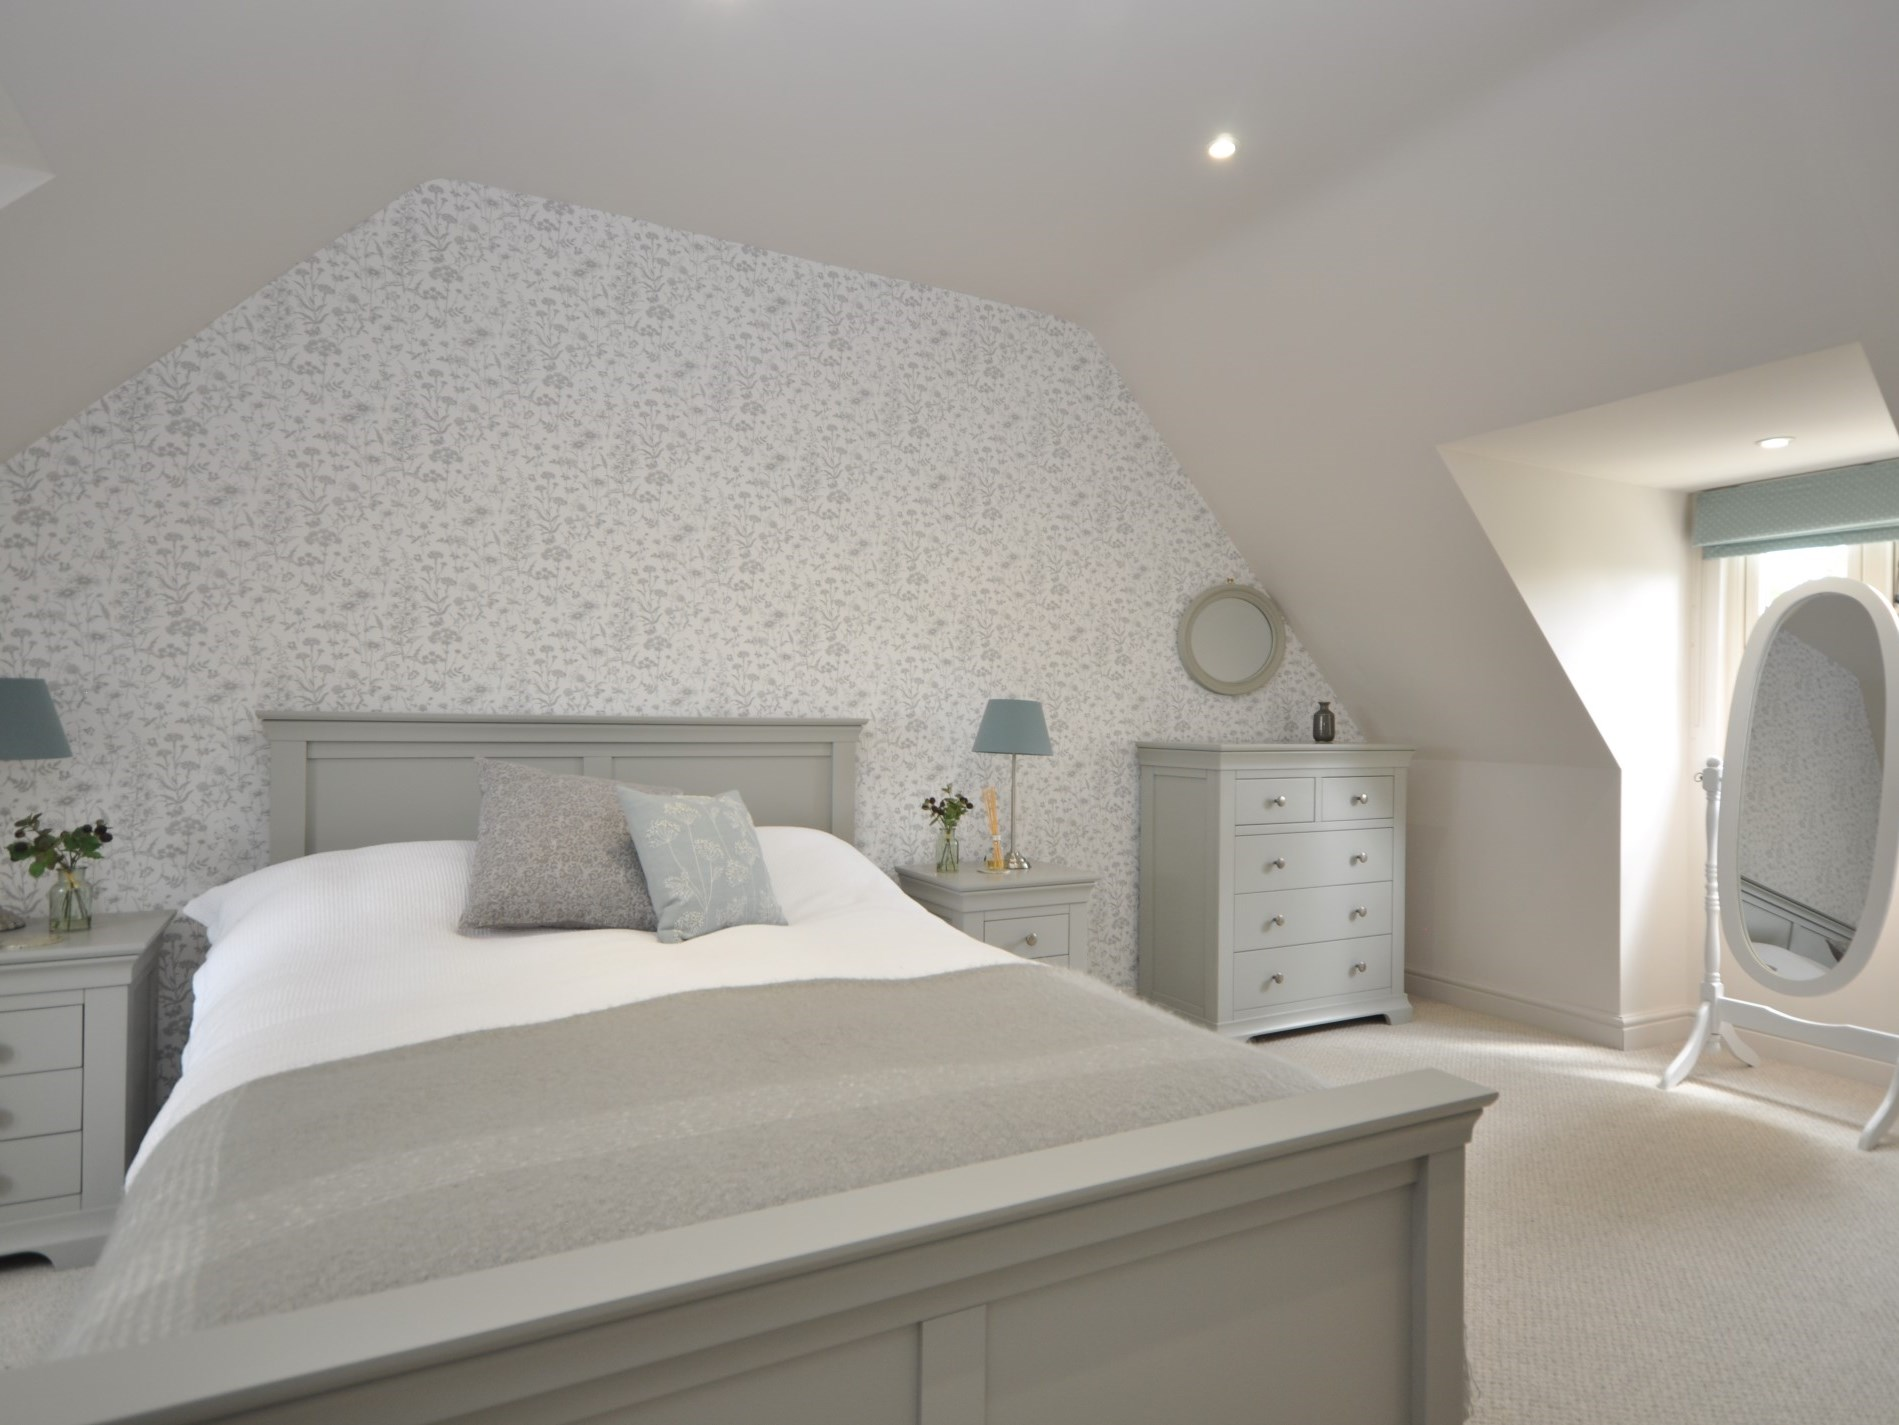 A beautiful master bedroom on the second floor